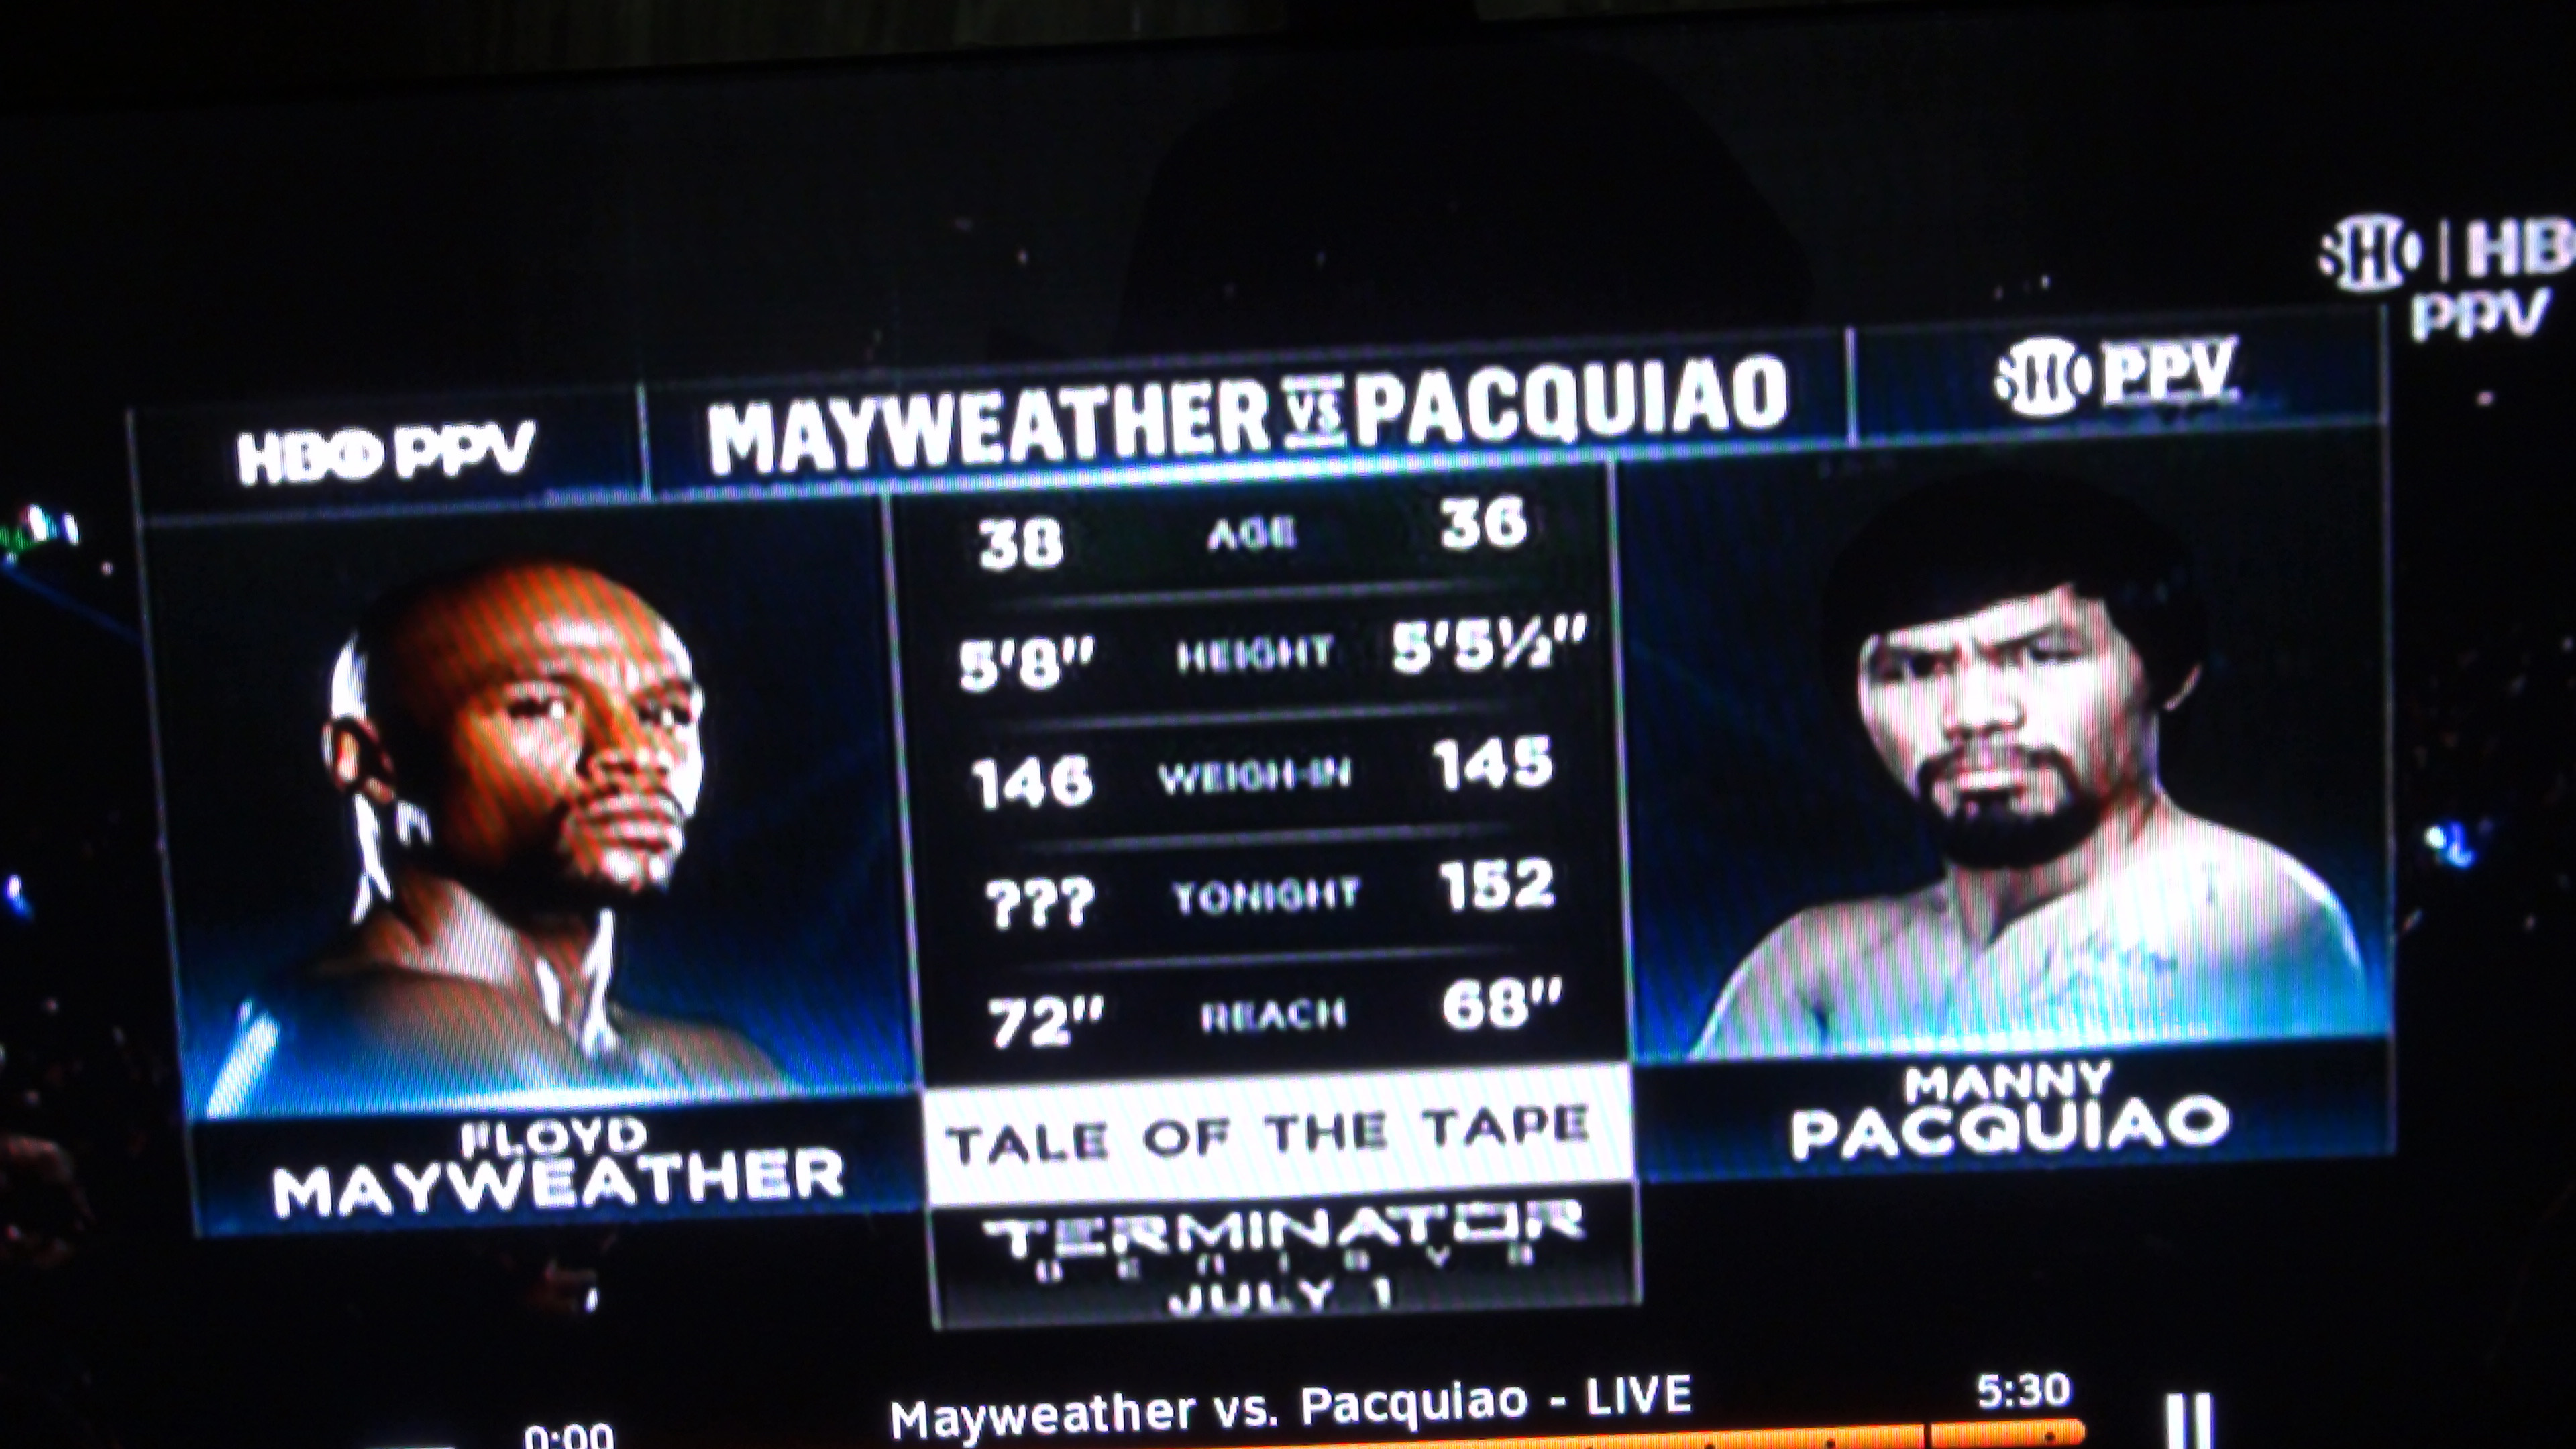 The so-called epic matchup